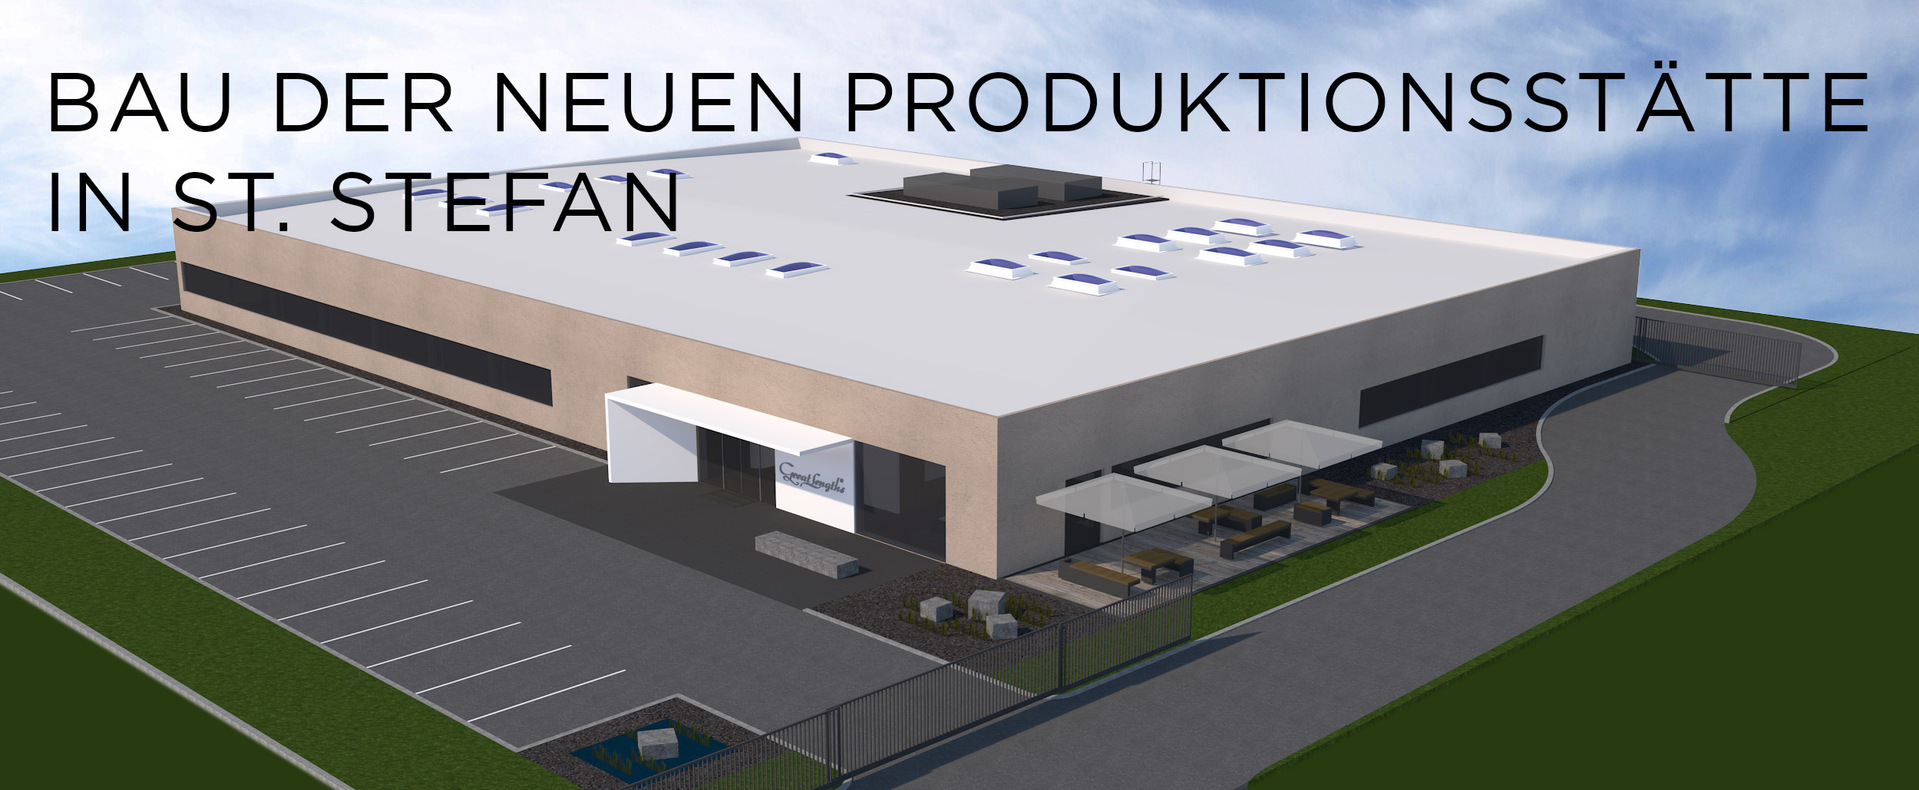 Bau der neuen Produktionsstätte in St. Stefan (© Great Lengths)